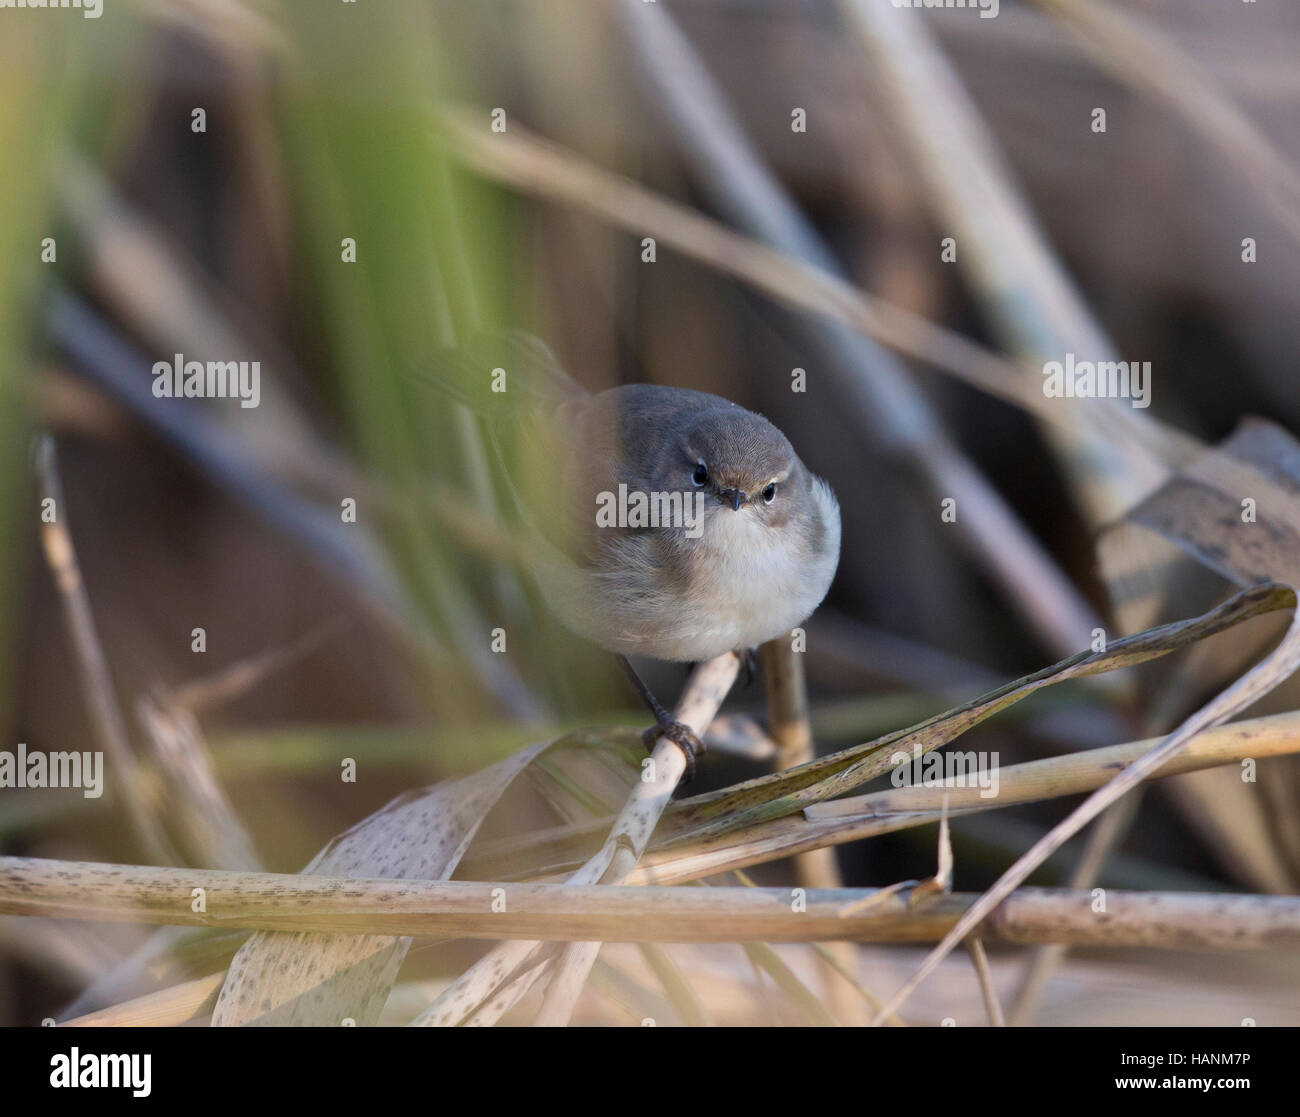 Siberian Chiffchaff, Phylloscopus collybita tristis, in a reed bed, at Llyn Coed-y-dinas, Stock Photo